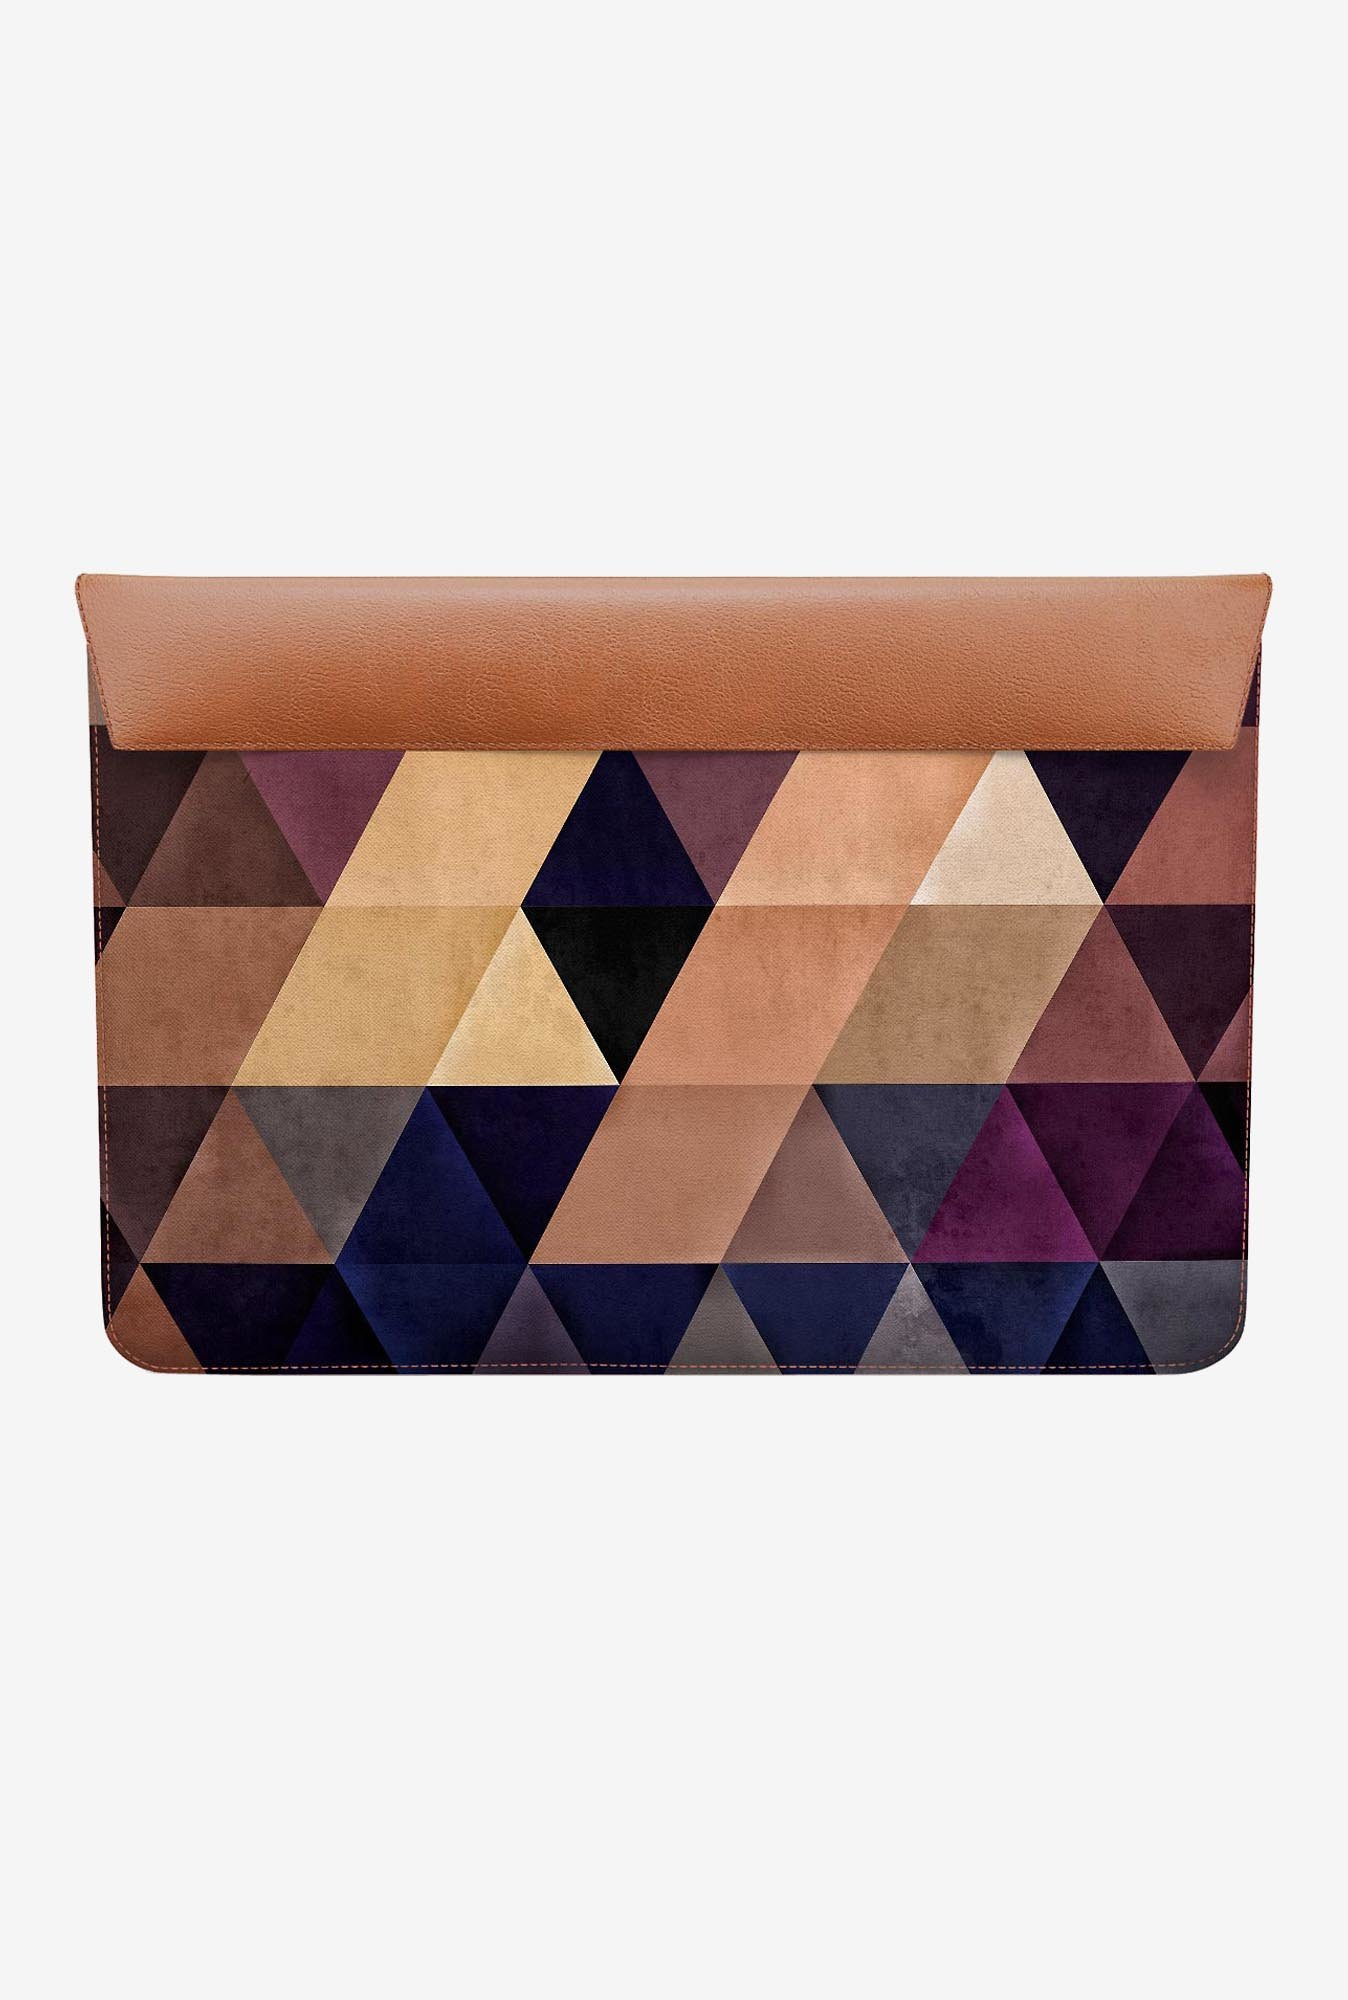 DailyObjects bayzh MacBook Air 11 Envelope Sleeve